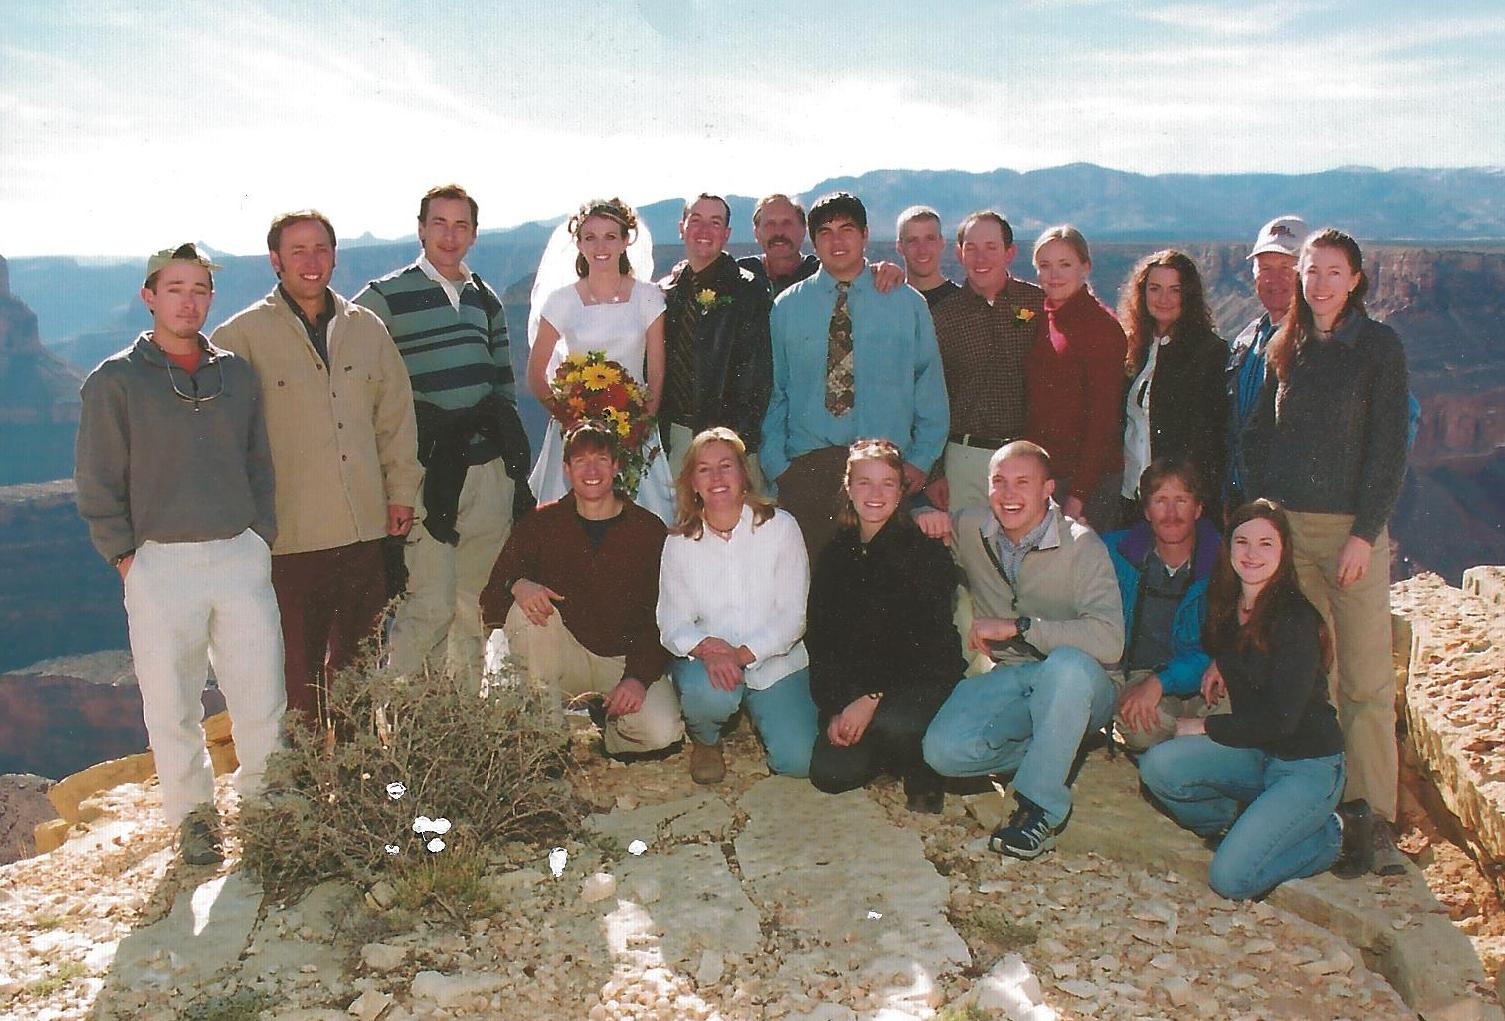 The Crate guide family with Walker and Mindy Mackay at their wedding on the rim of the Grand Canyon.